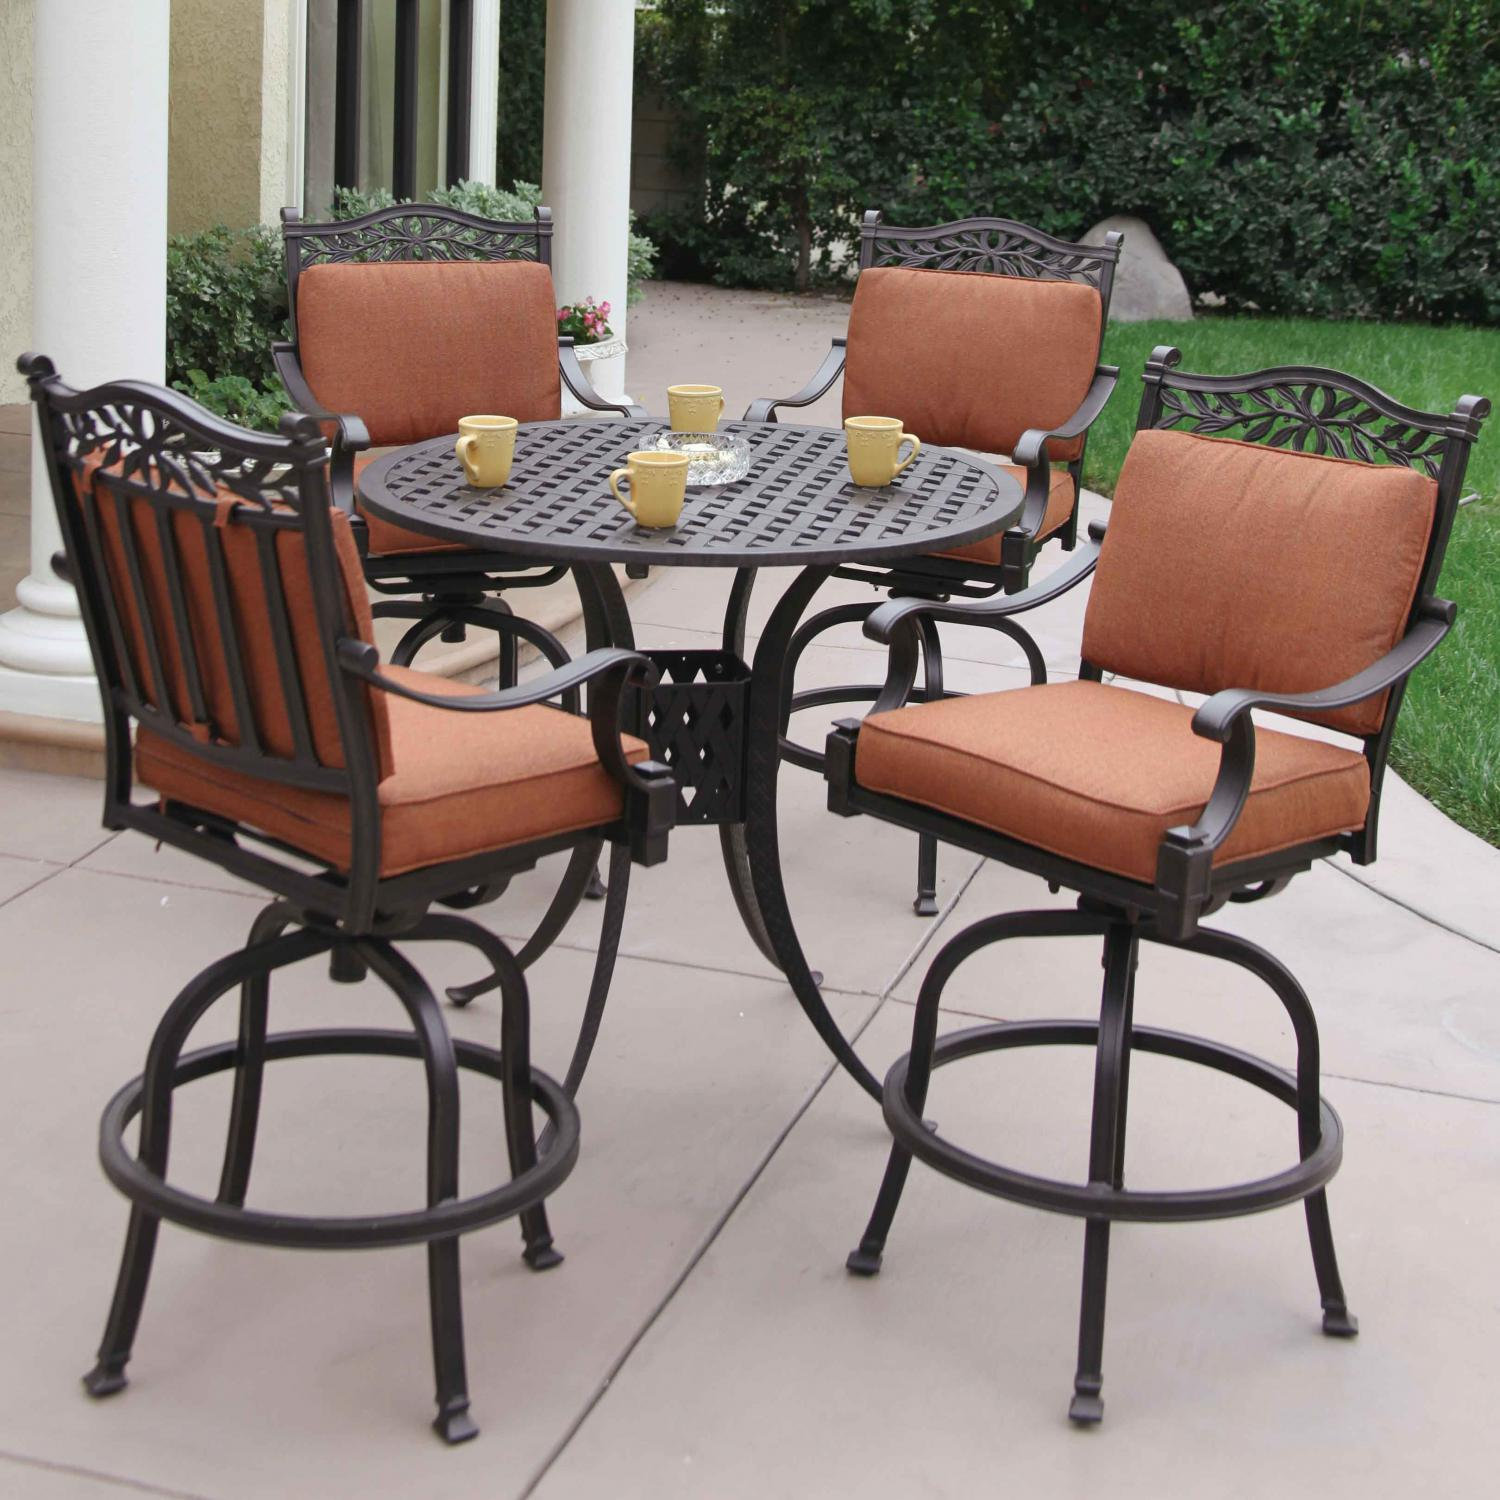 ideas furniture manufacturers elegant aluminium of concept cast outdoor chairs aluminum patio